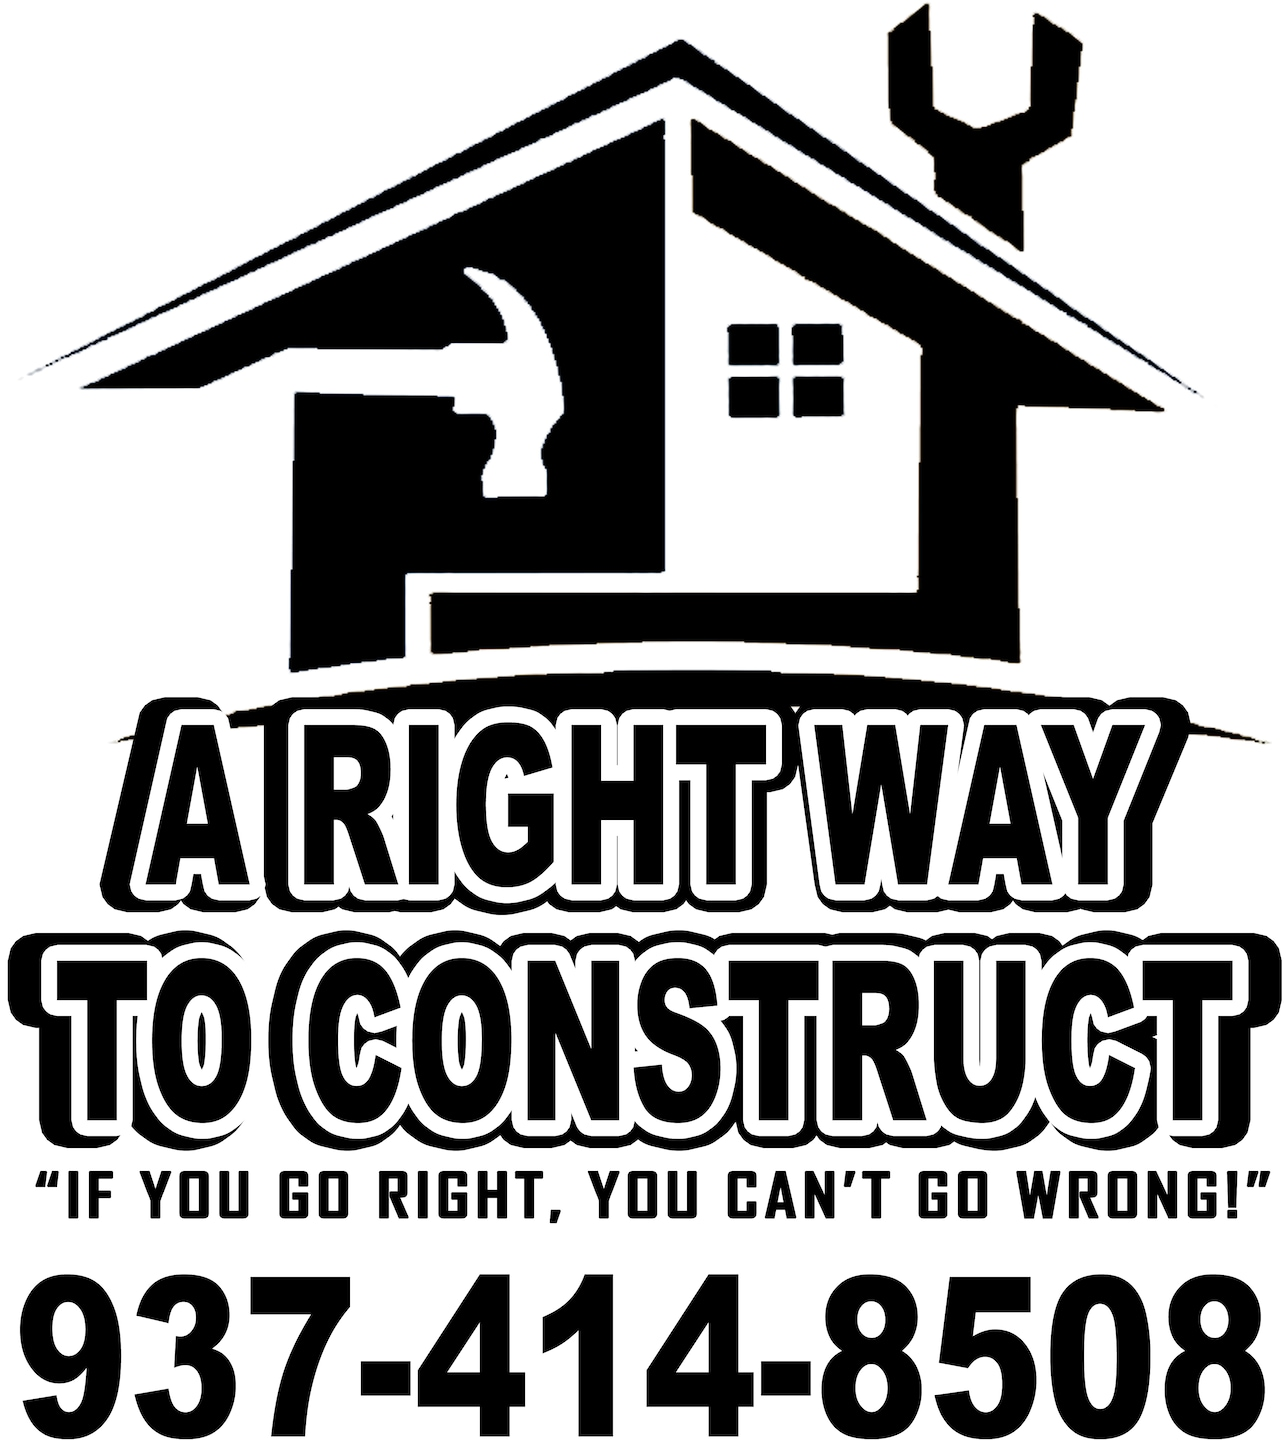 A Right Way to Construct